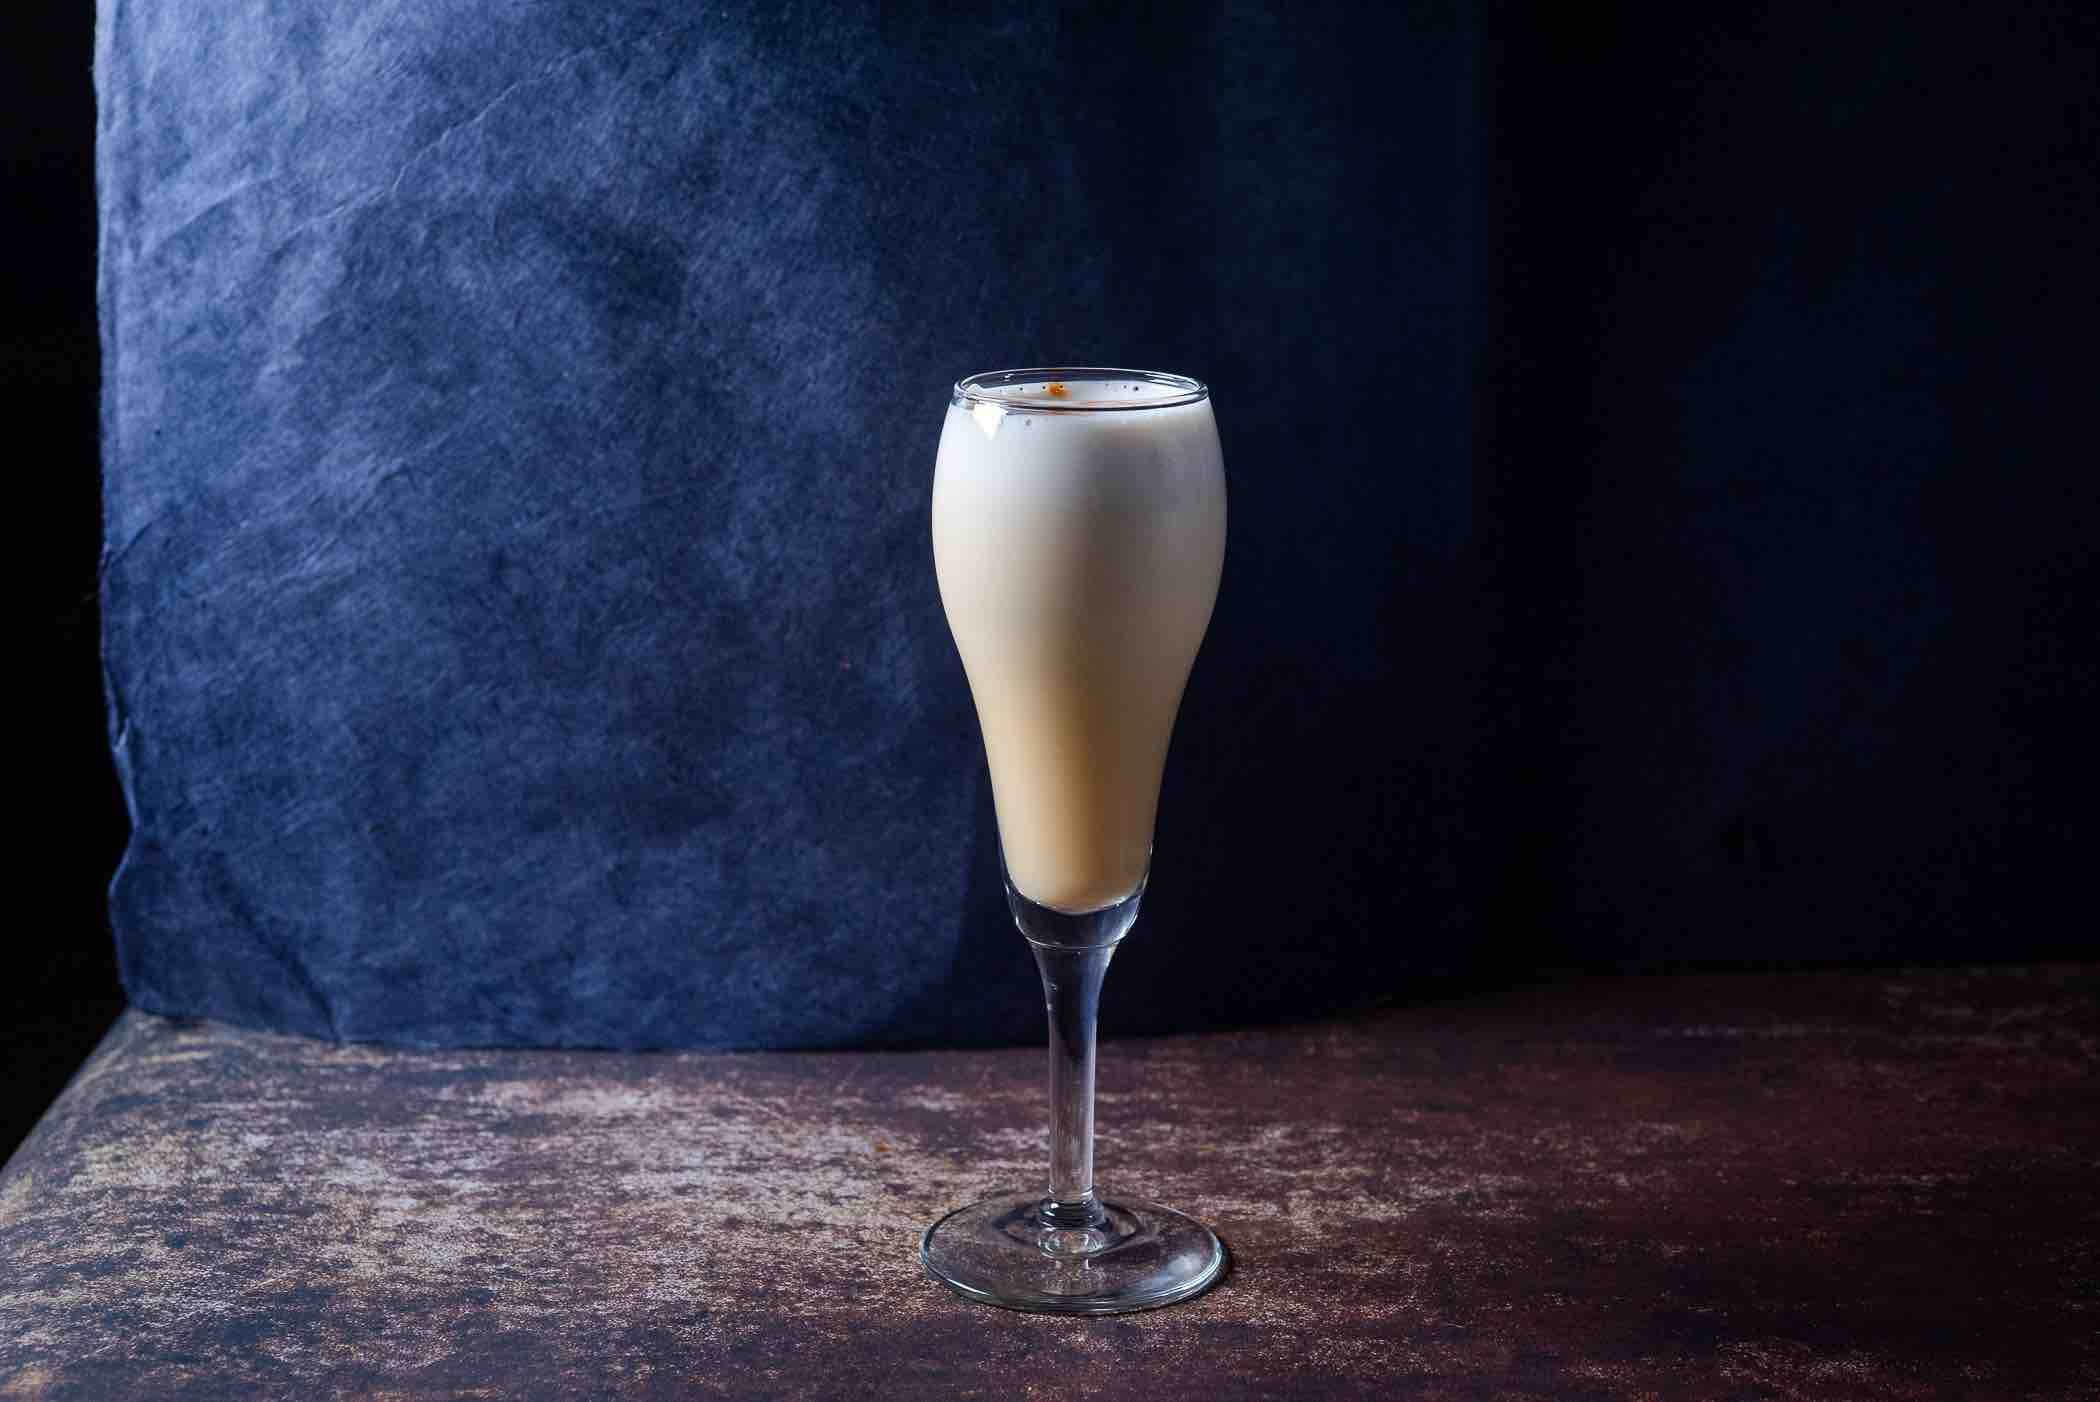 Take Your Día de los Muertos, or Day of the Dead Celebration Up A Notch With These Delicious Tequila Cocktails